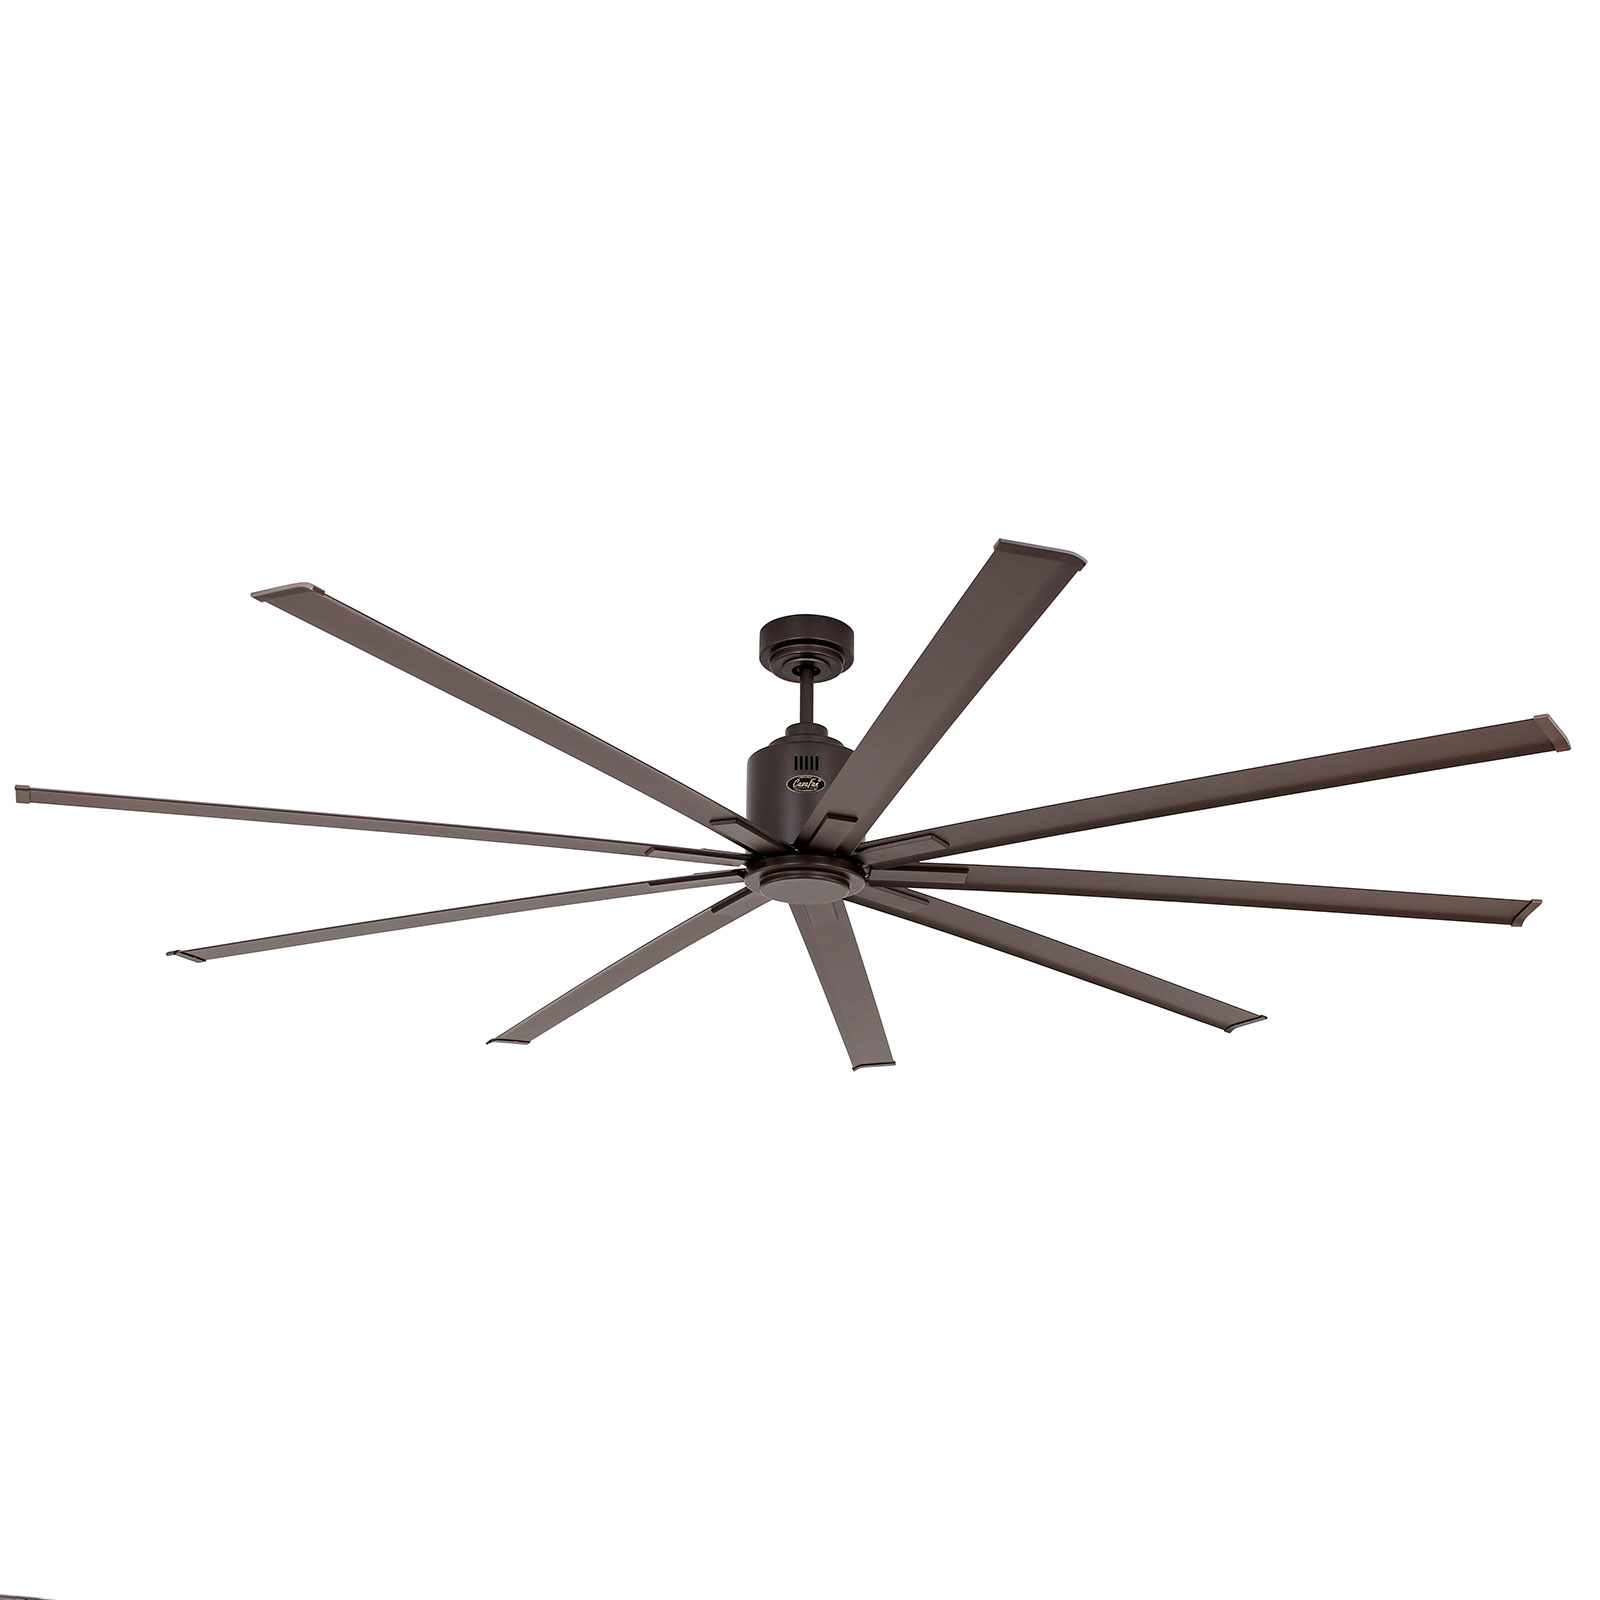 Deckenventilator Big Smooth Eco 220 cm bronze